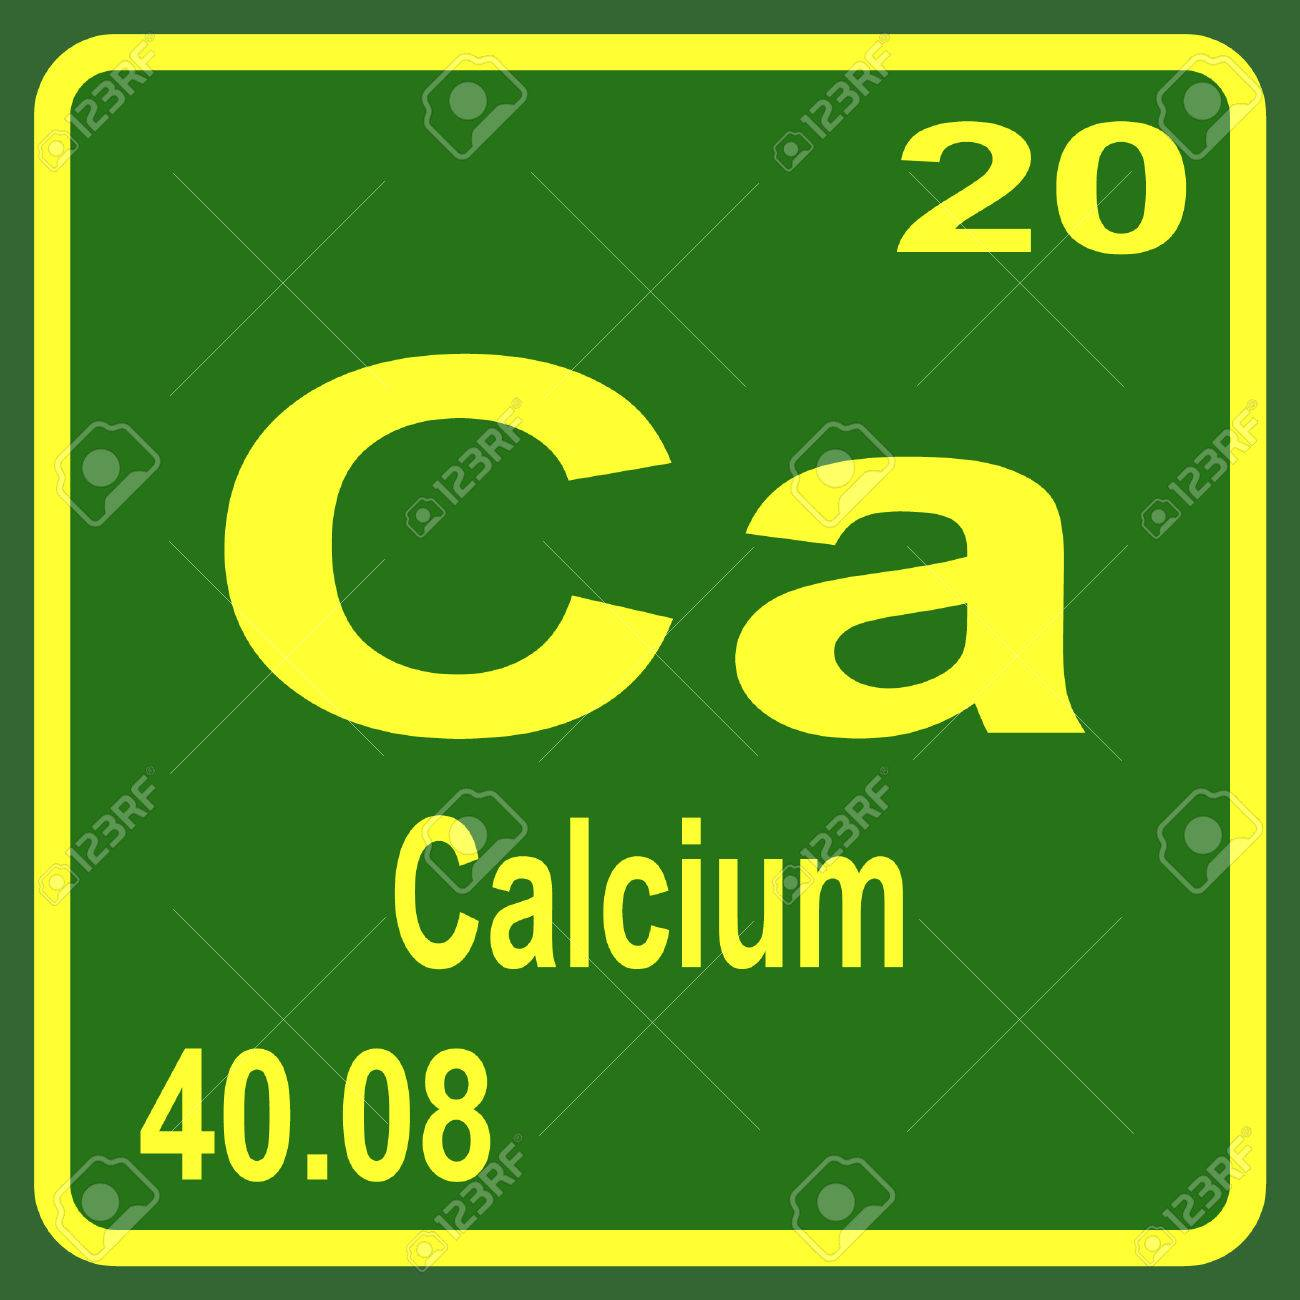 Periodic table of elements calcium royalty free cliparts vectors periodic table of elements calcium stock vector 53901621 urtaz Gallery